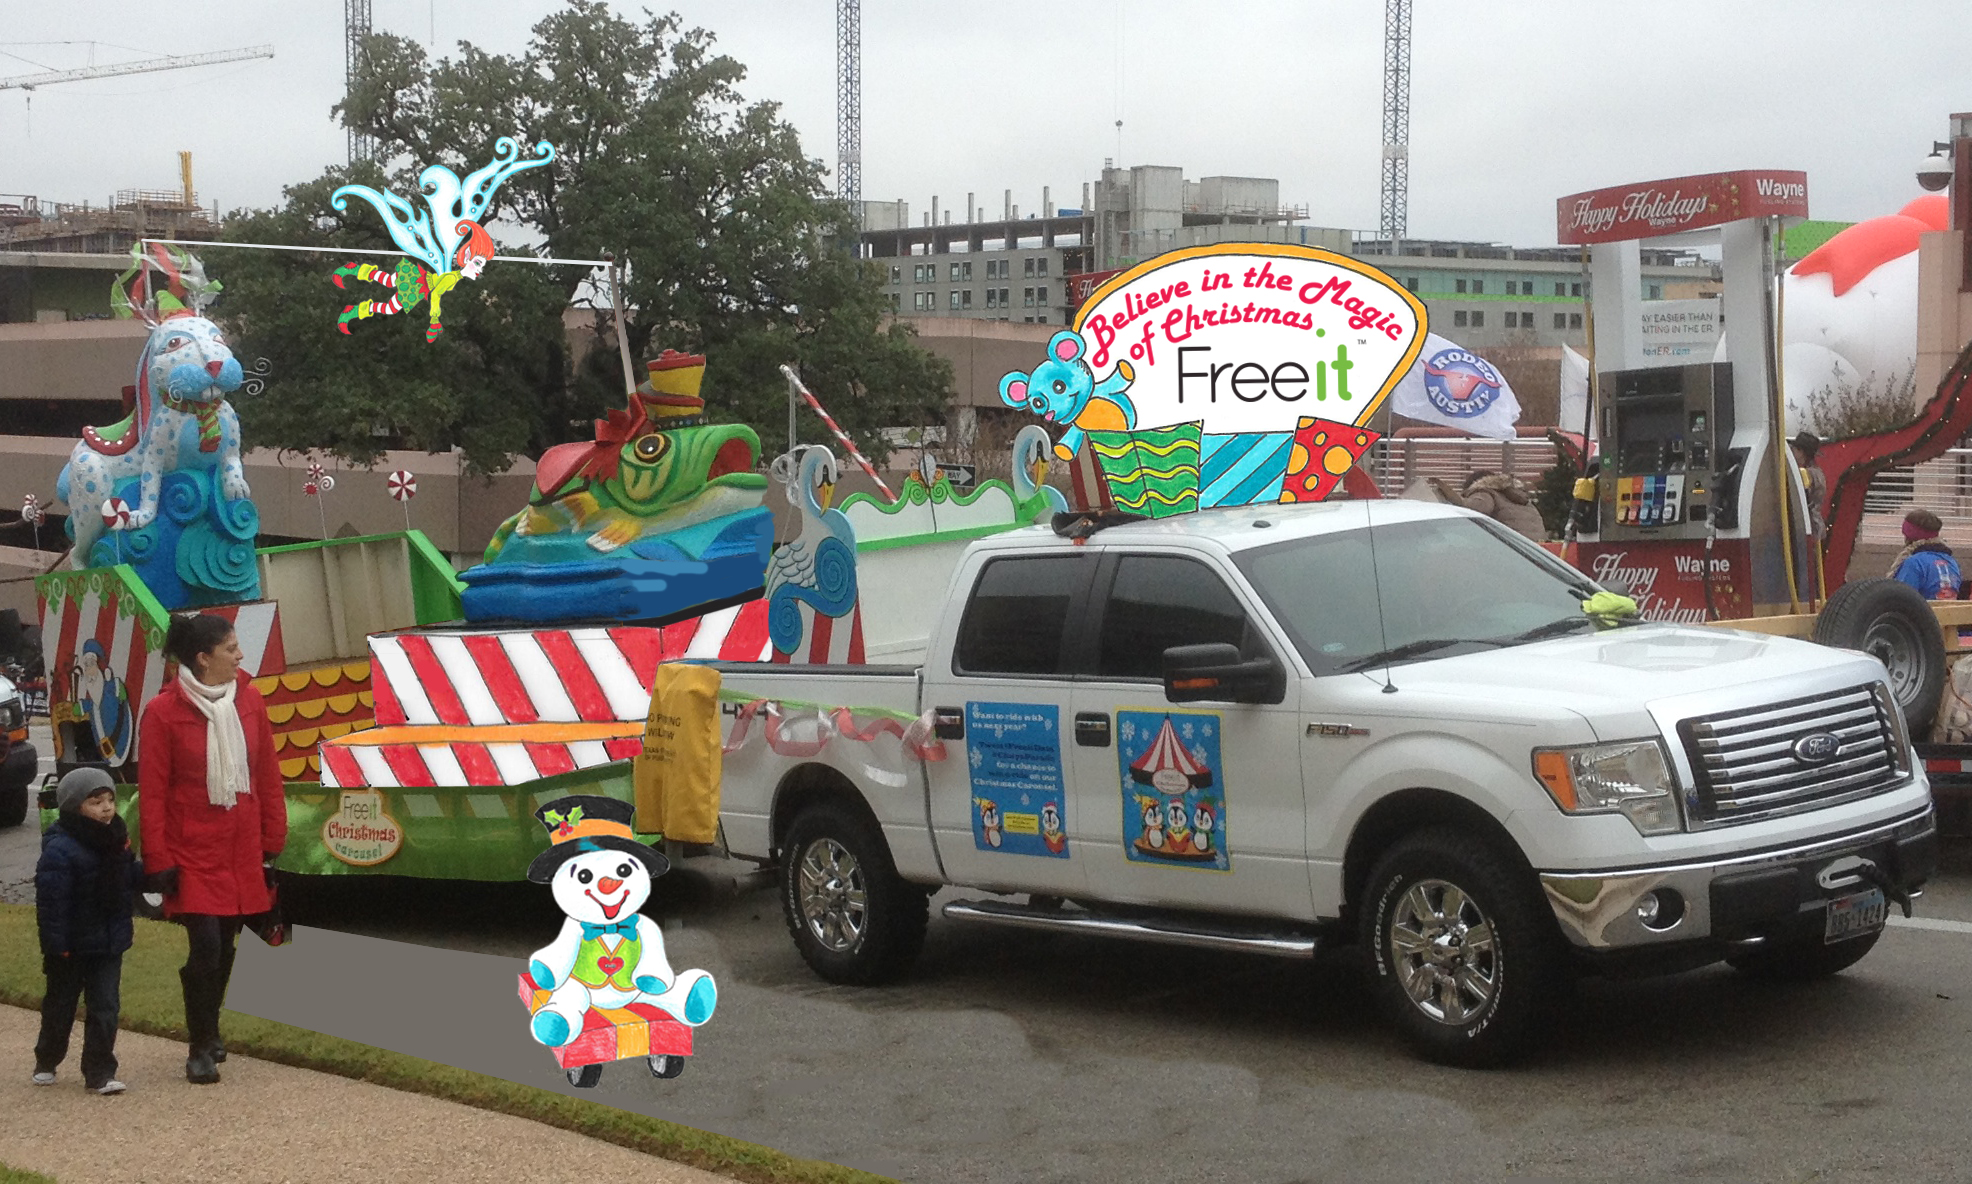 Rendering of the 2016 Freeit Christmas Float